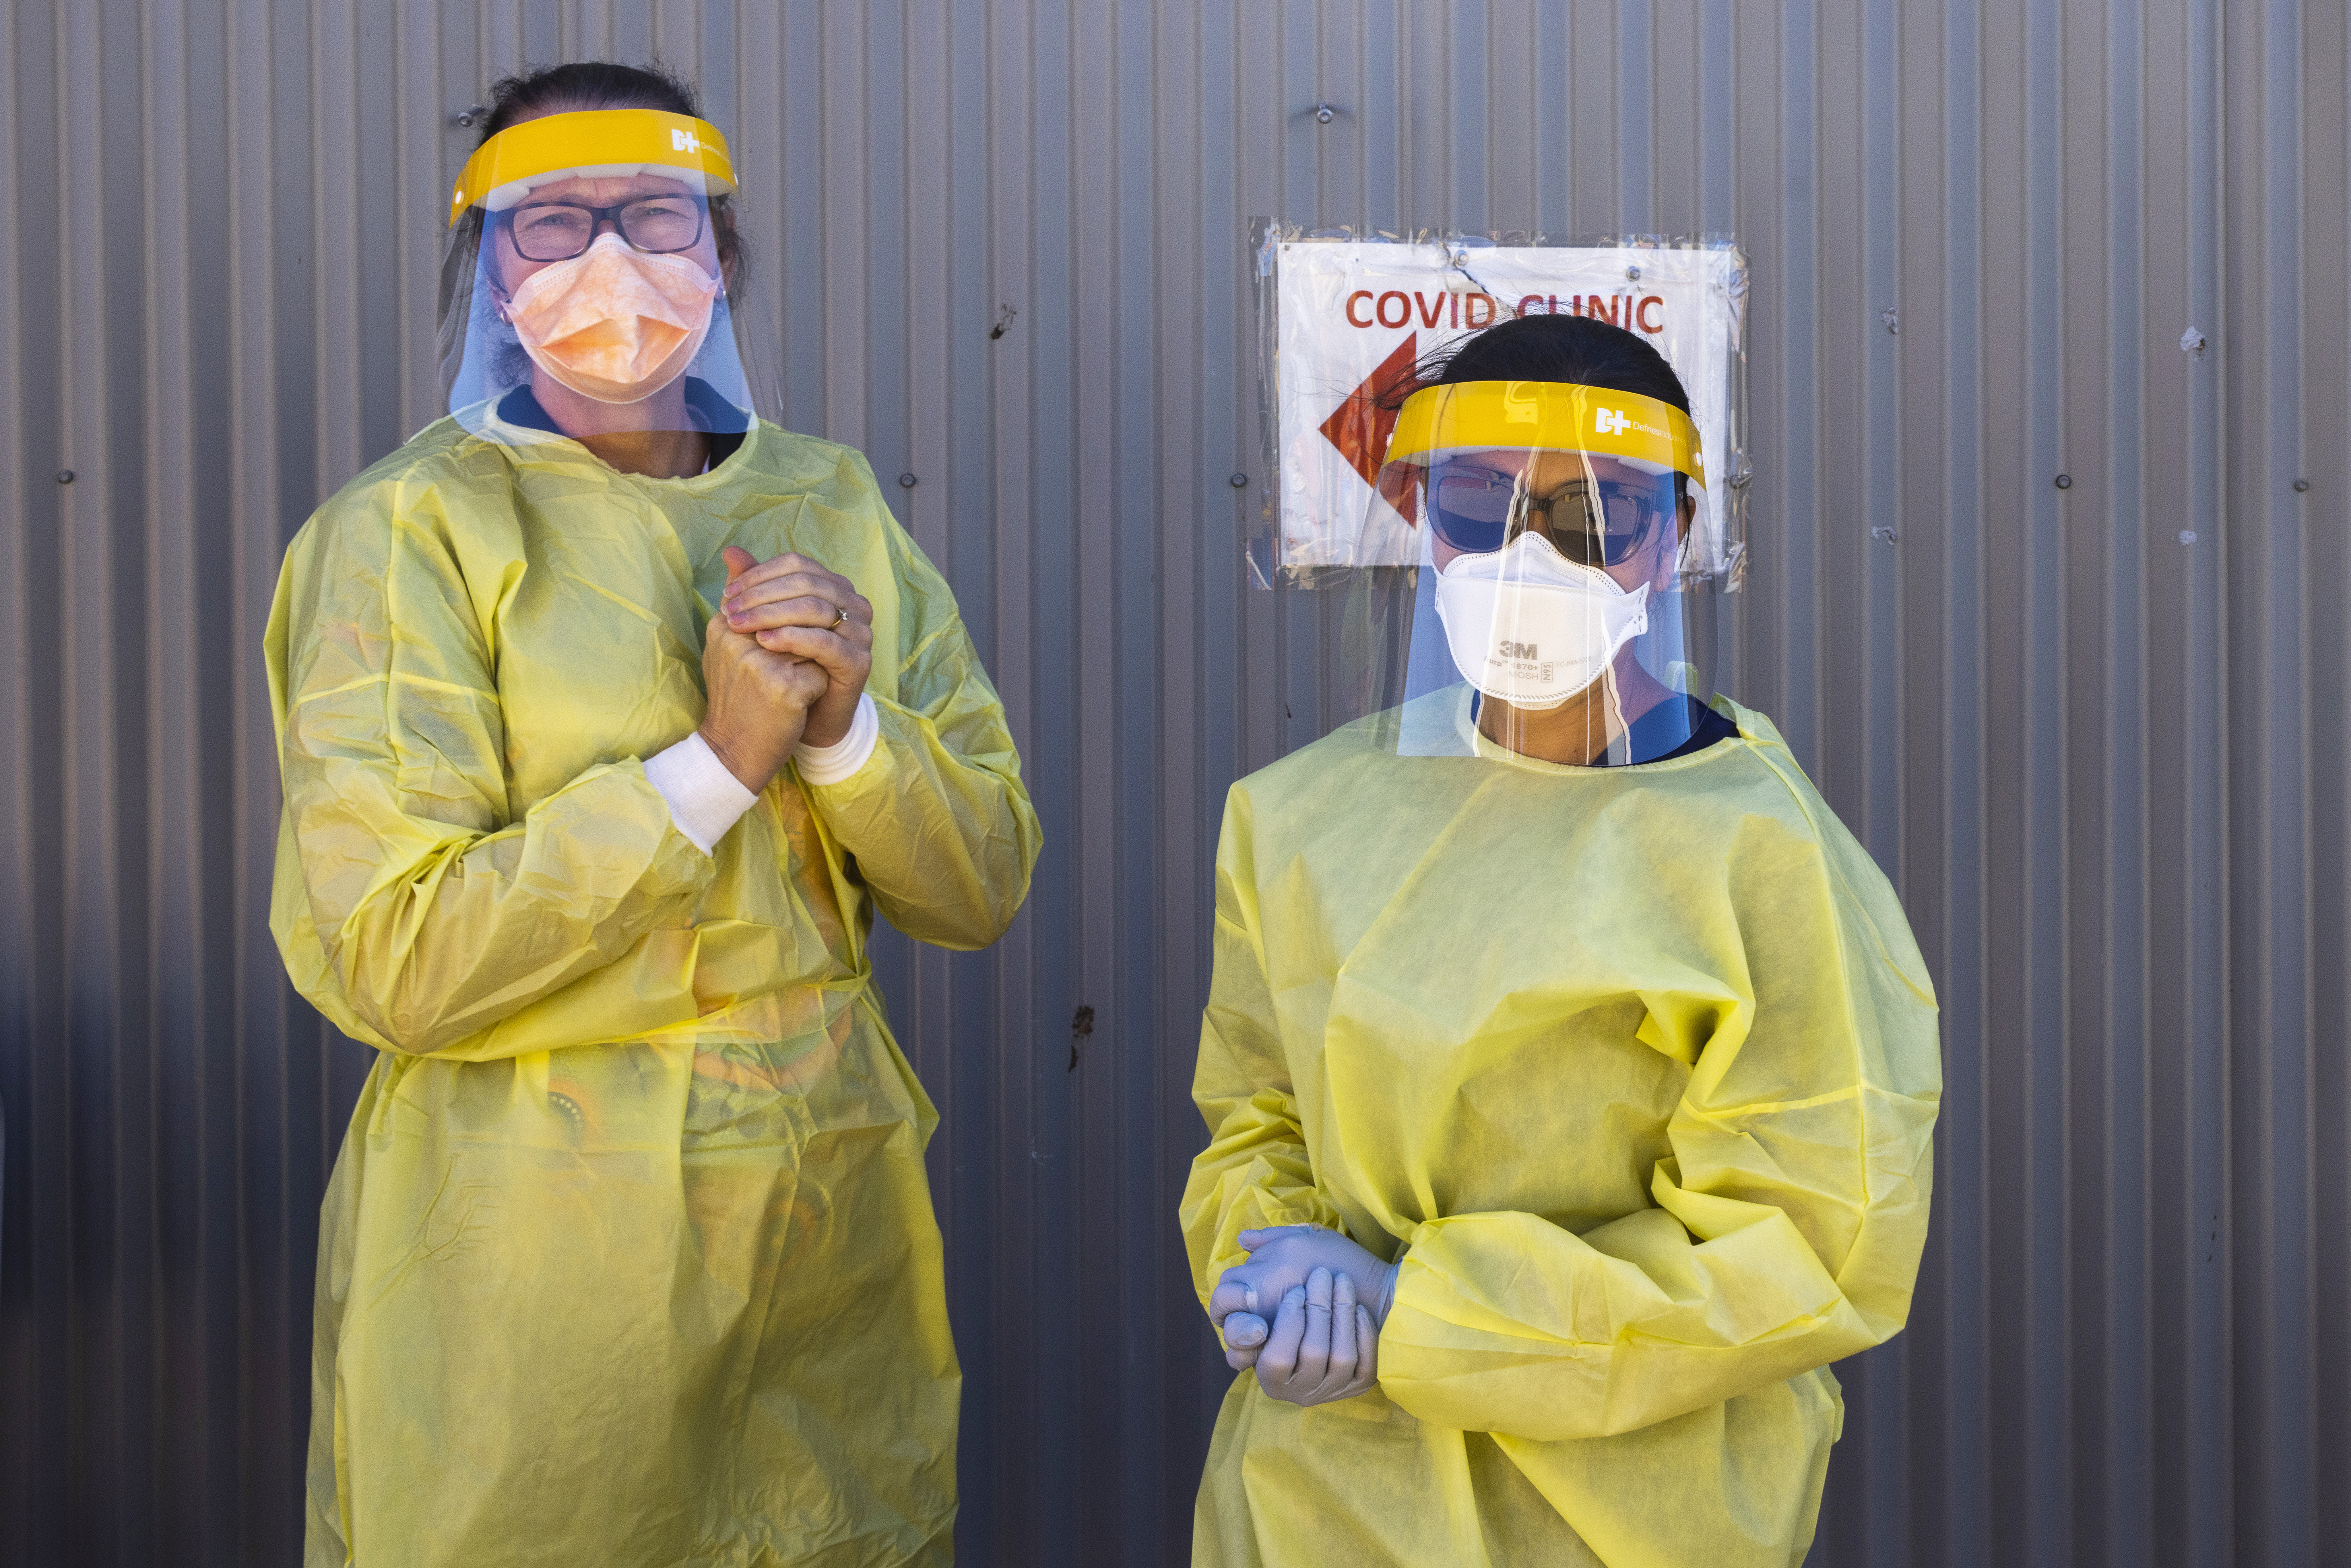 Health care workers are seen at a COVID-19 testing clinic on September 08, 2021 in Nyngan, NSW. (Photo by Jenny Evans/Getty Images)